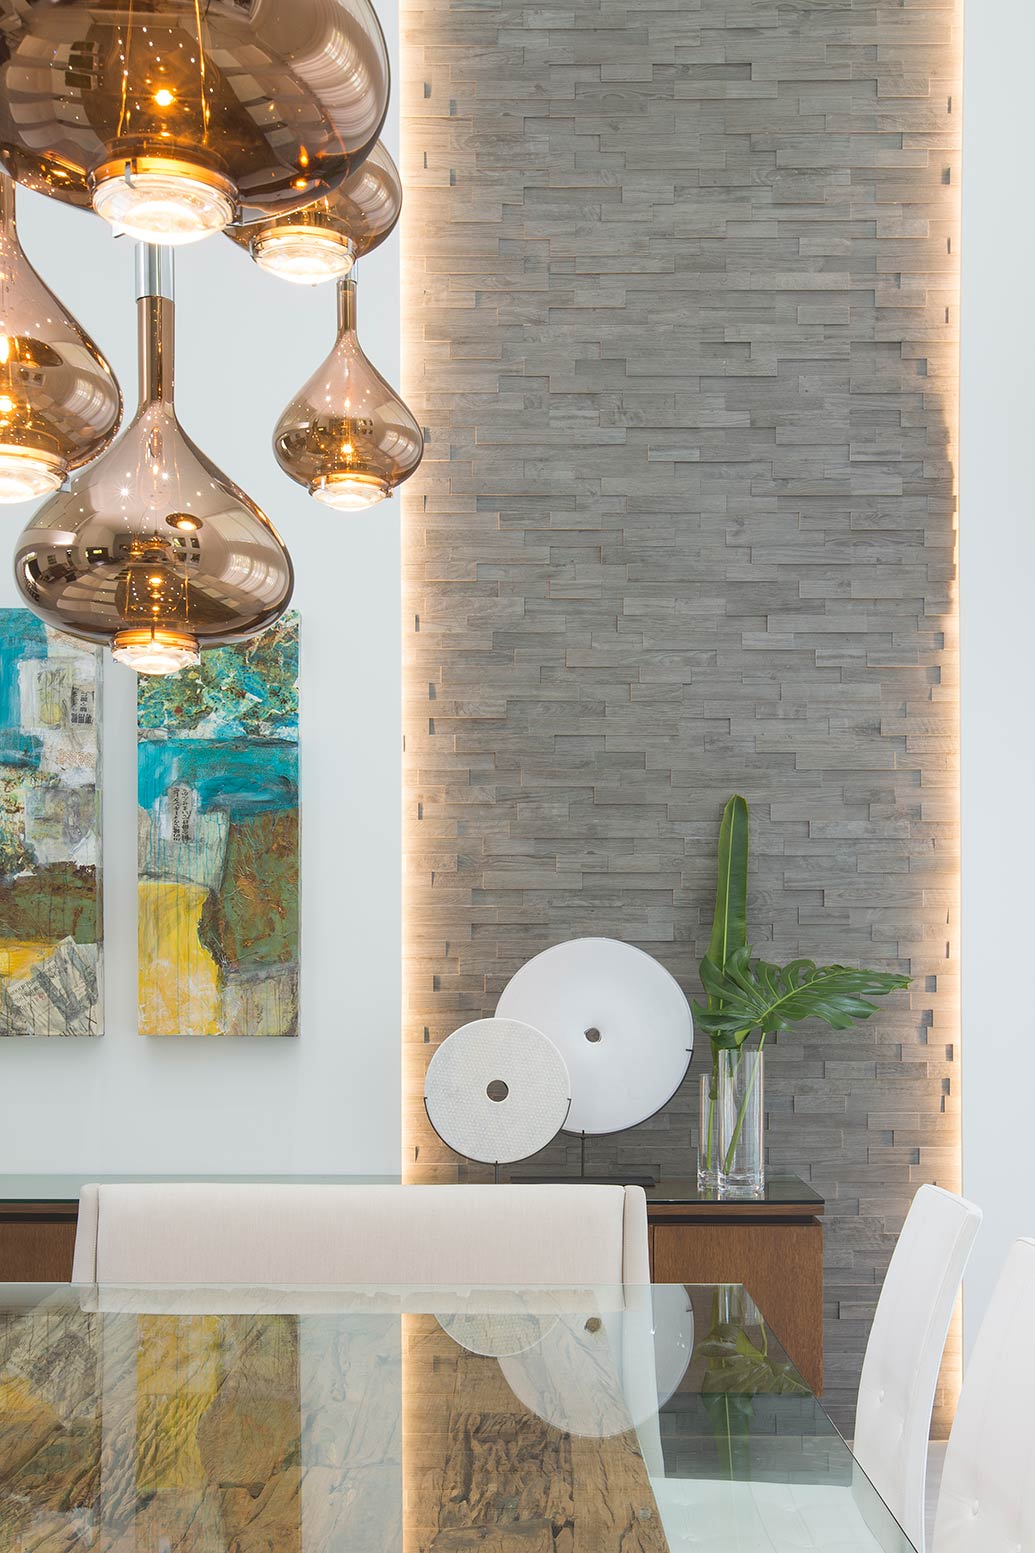 Benefits of Incorporating Art in Your Home Interiors